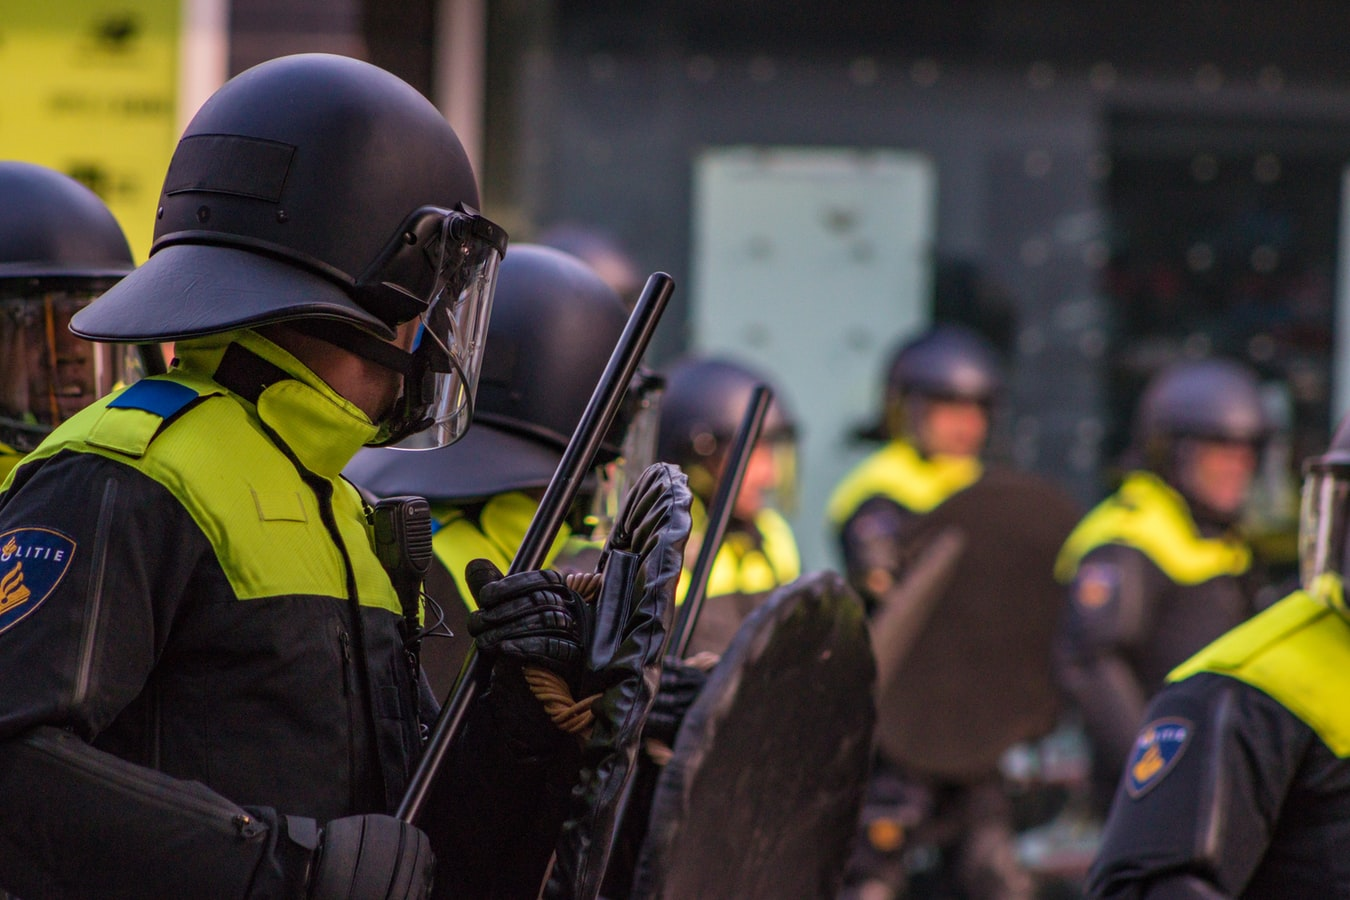 Dutch police 'threaten' suspects with using images of alleged crimes online